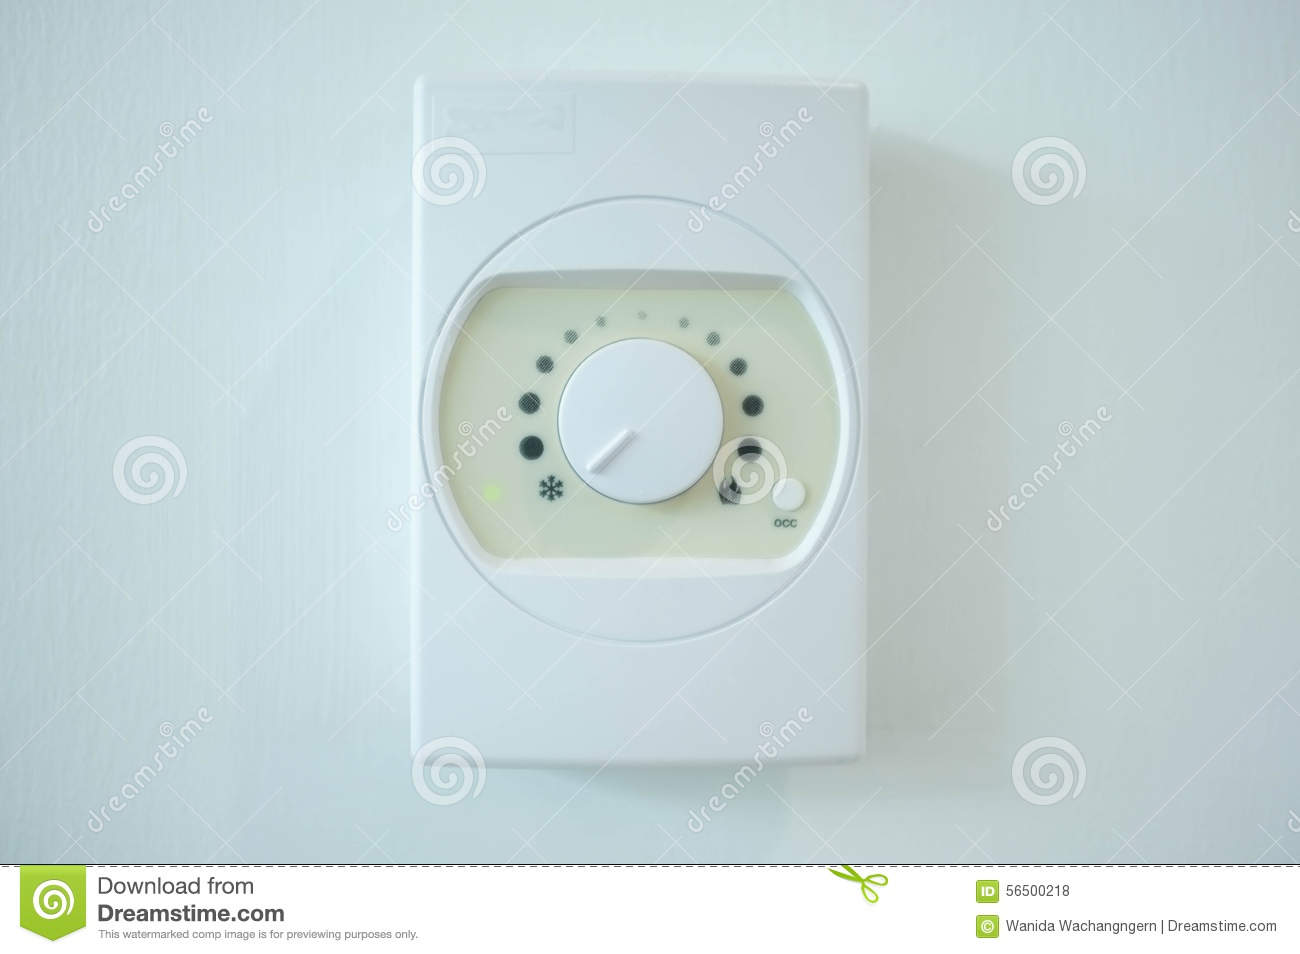 Air Conditioner Temperature Control Switch On The Wall